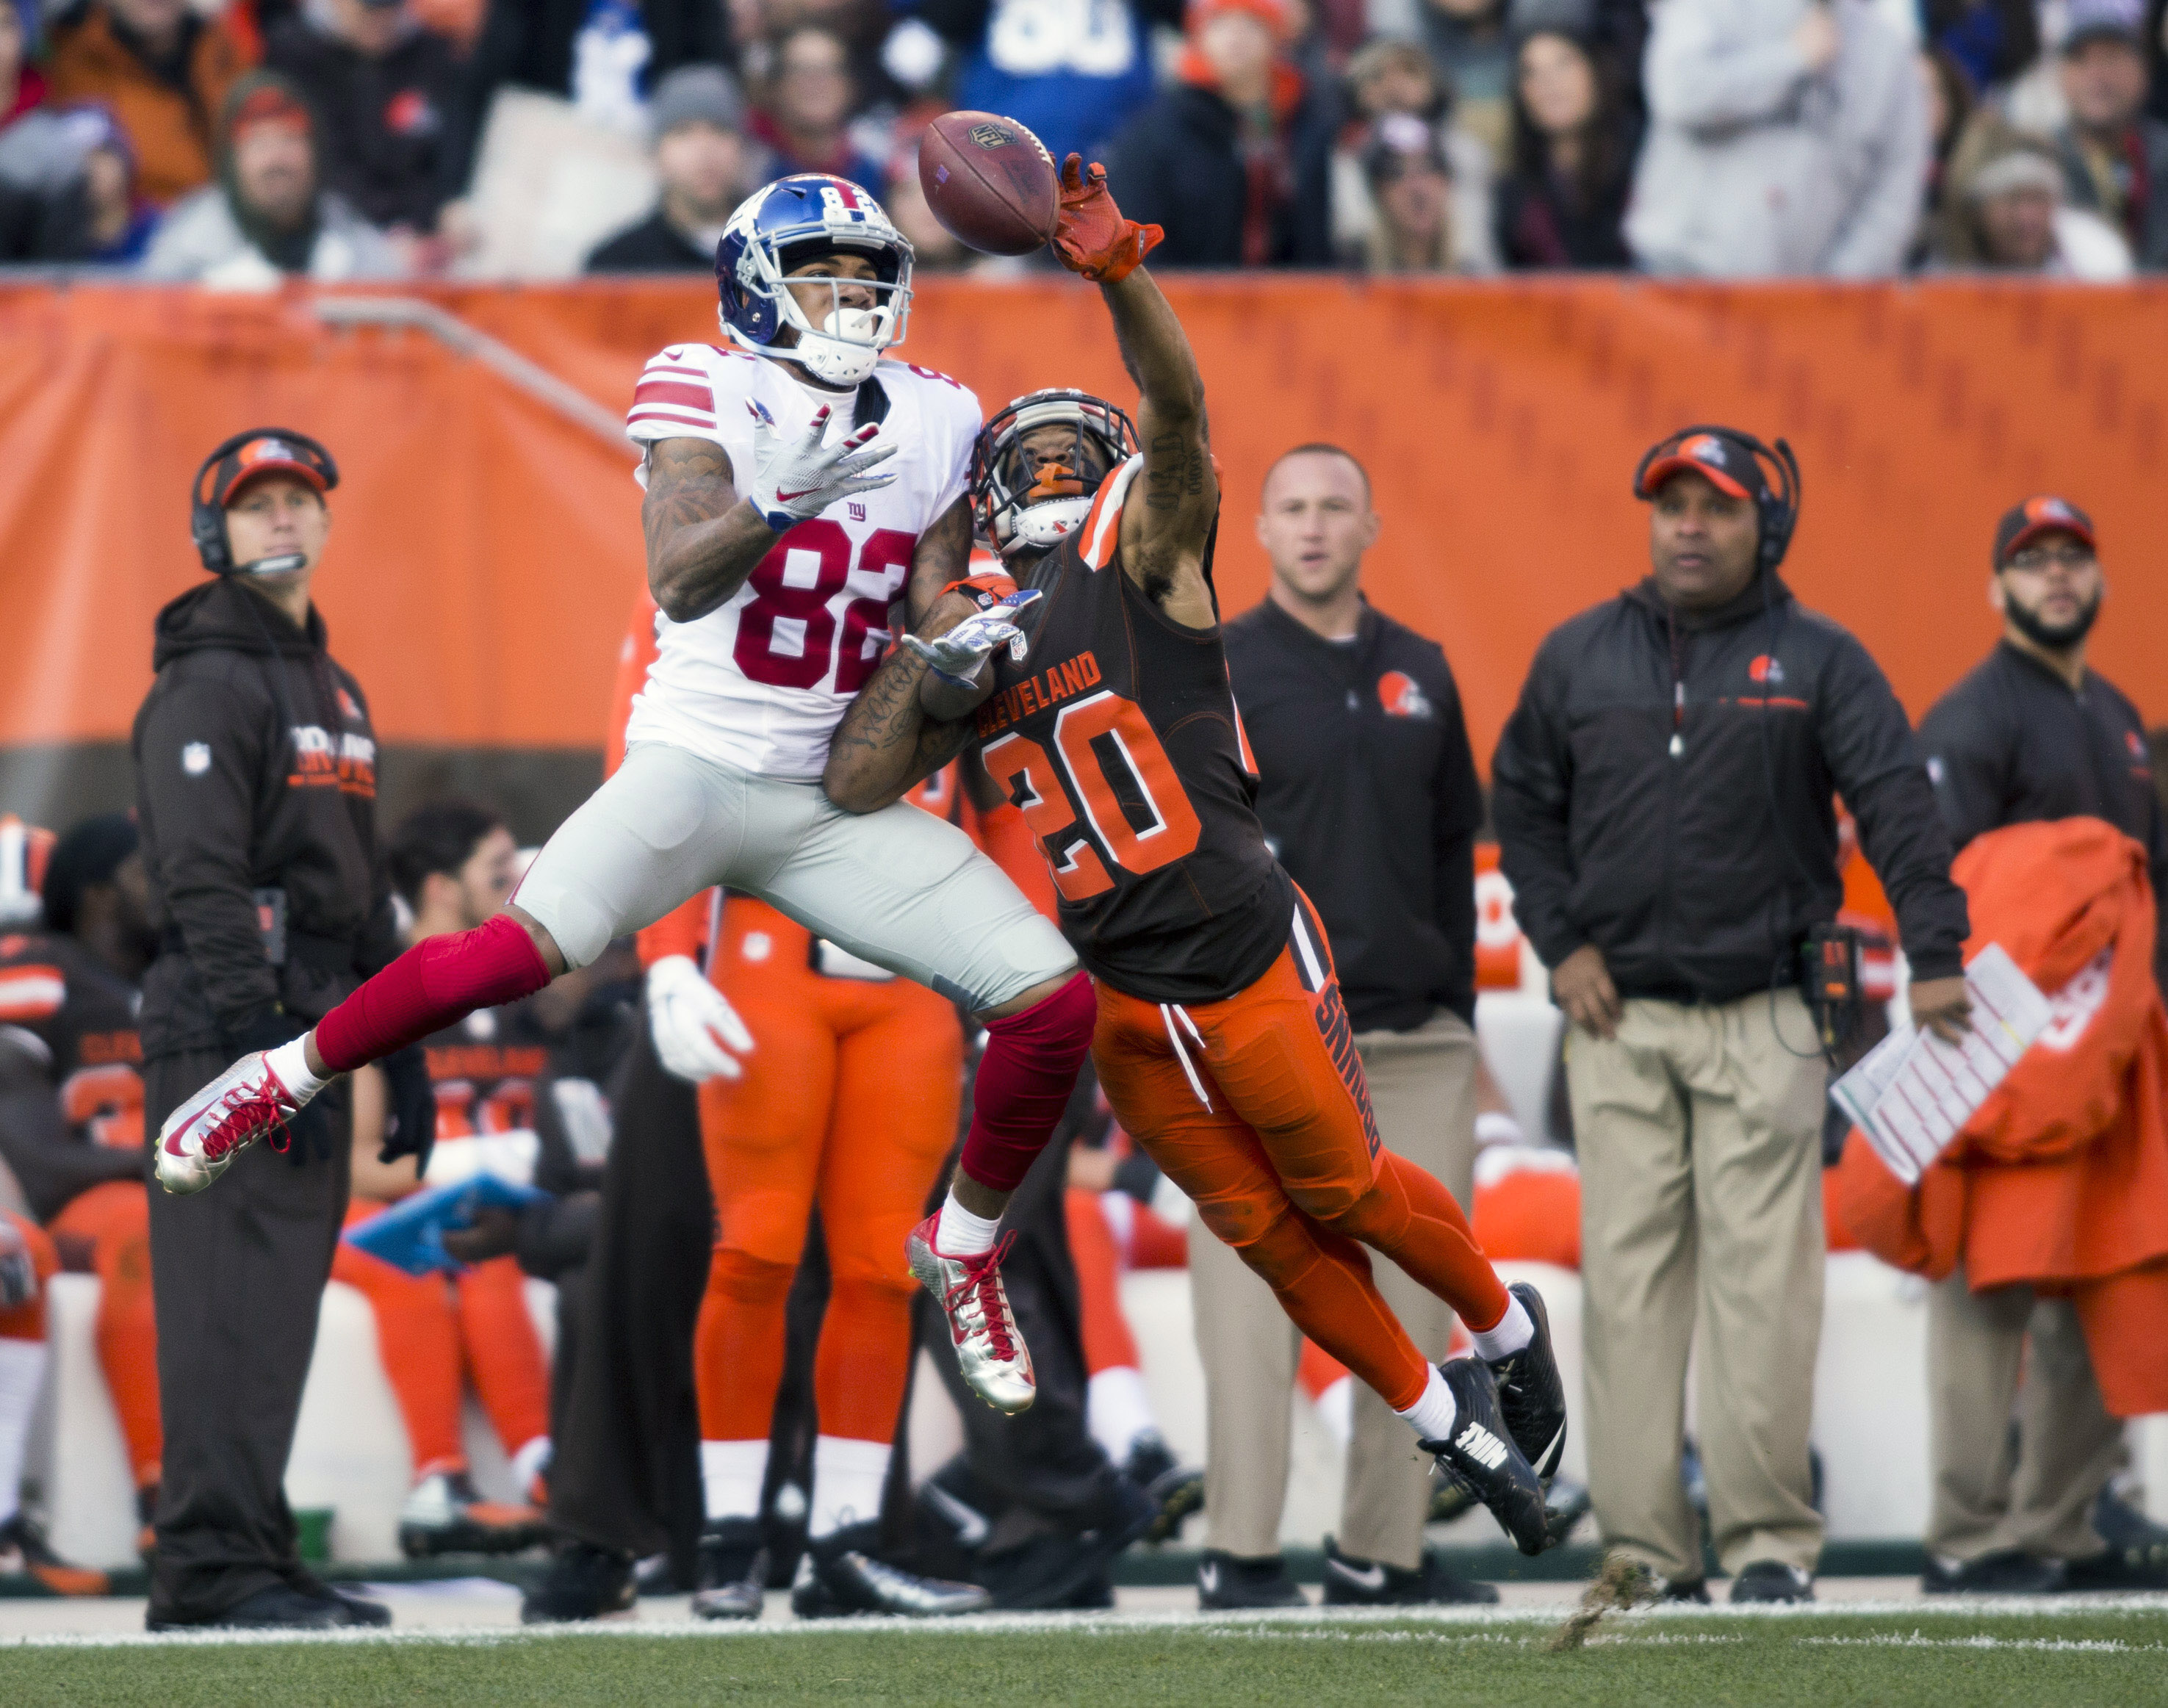 9709614-nfl-new-york-giants-at-cleveland-browns